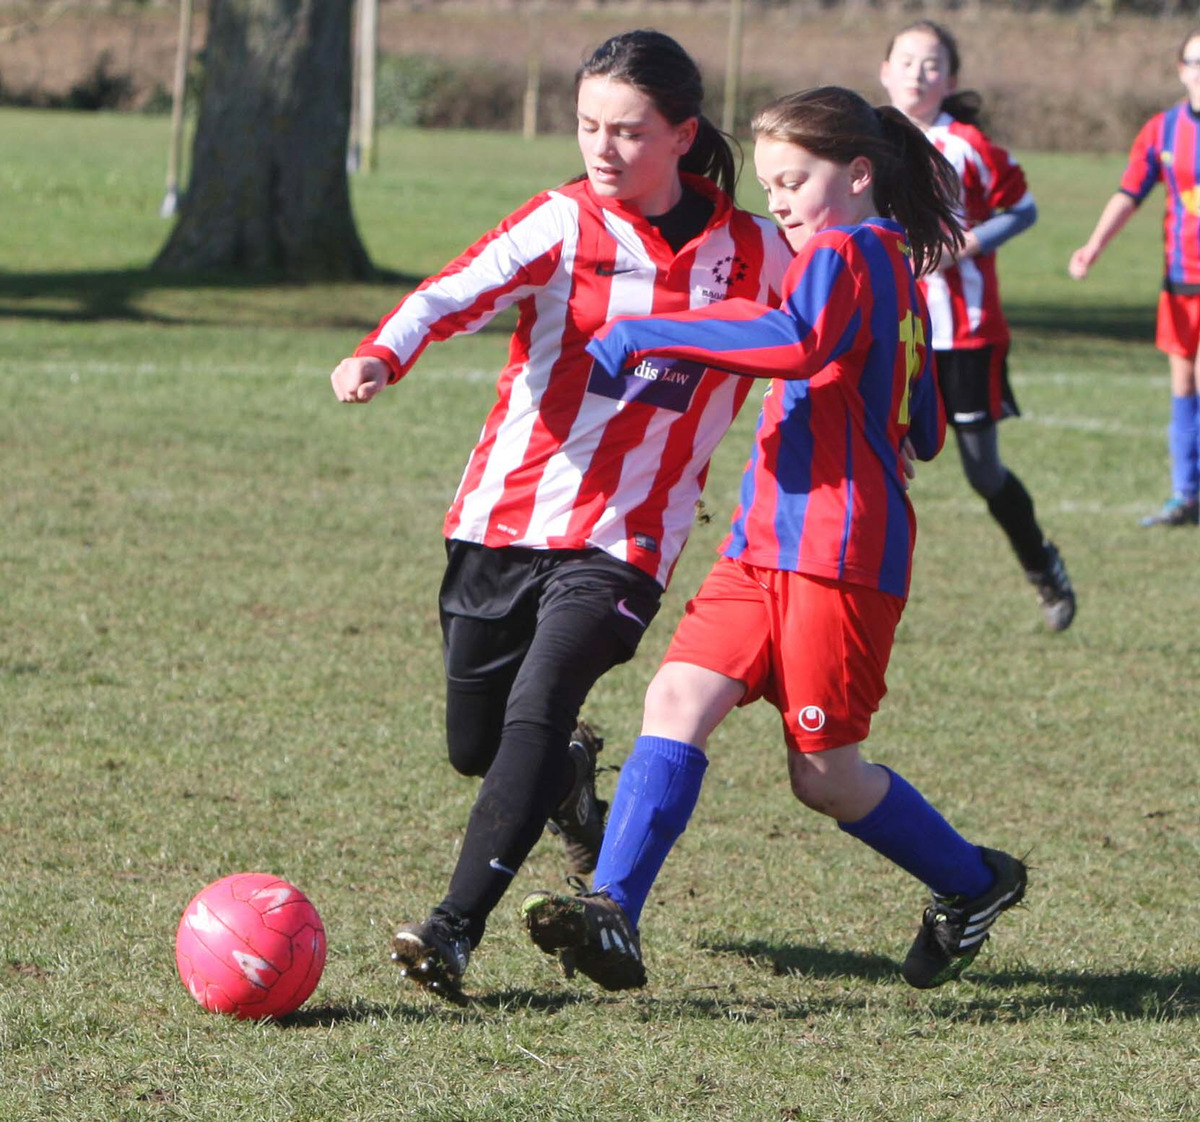 Summertown's Ainara Sauca Wences tangles with Tower Hill rival Charmaine Leach during their Under 11 League Cup clash which the latter won 1-0